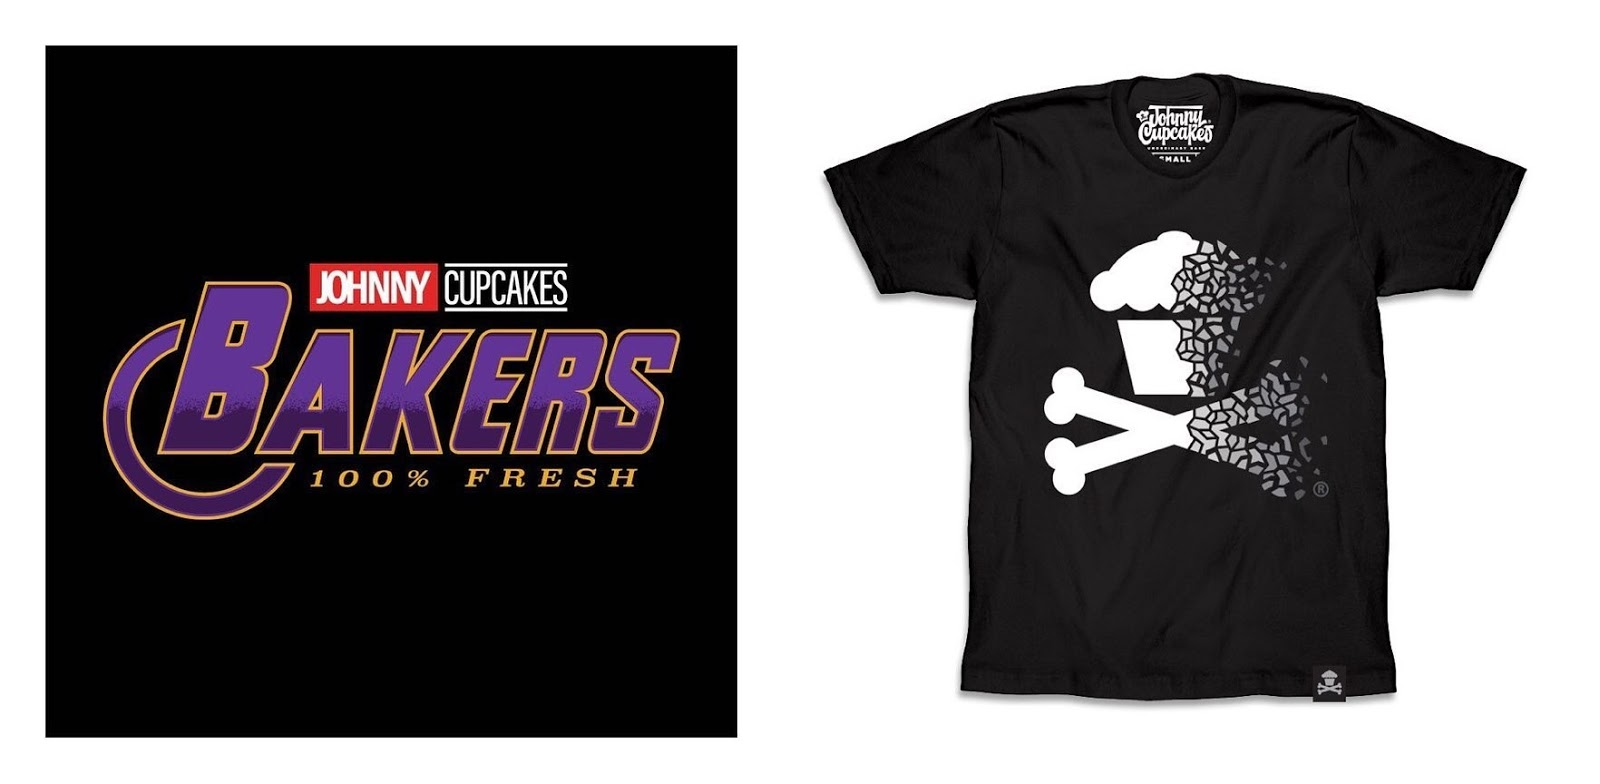 944b7242e478d The Blot Says...  Avengers  Endgame T-Shirt Collection by Johnny Cupcakes